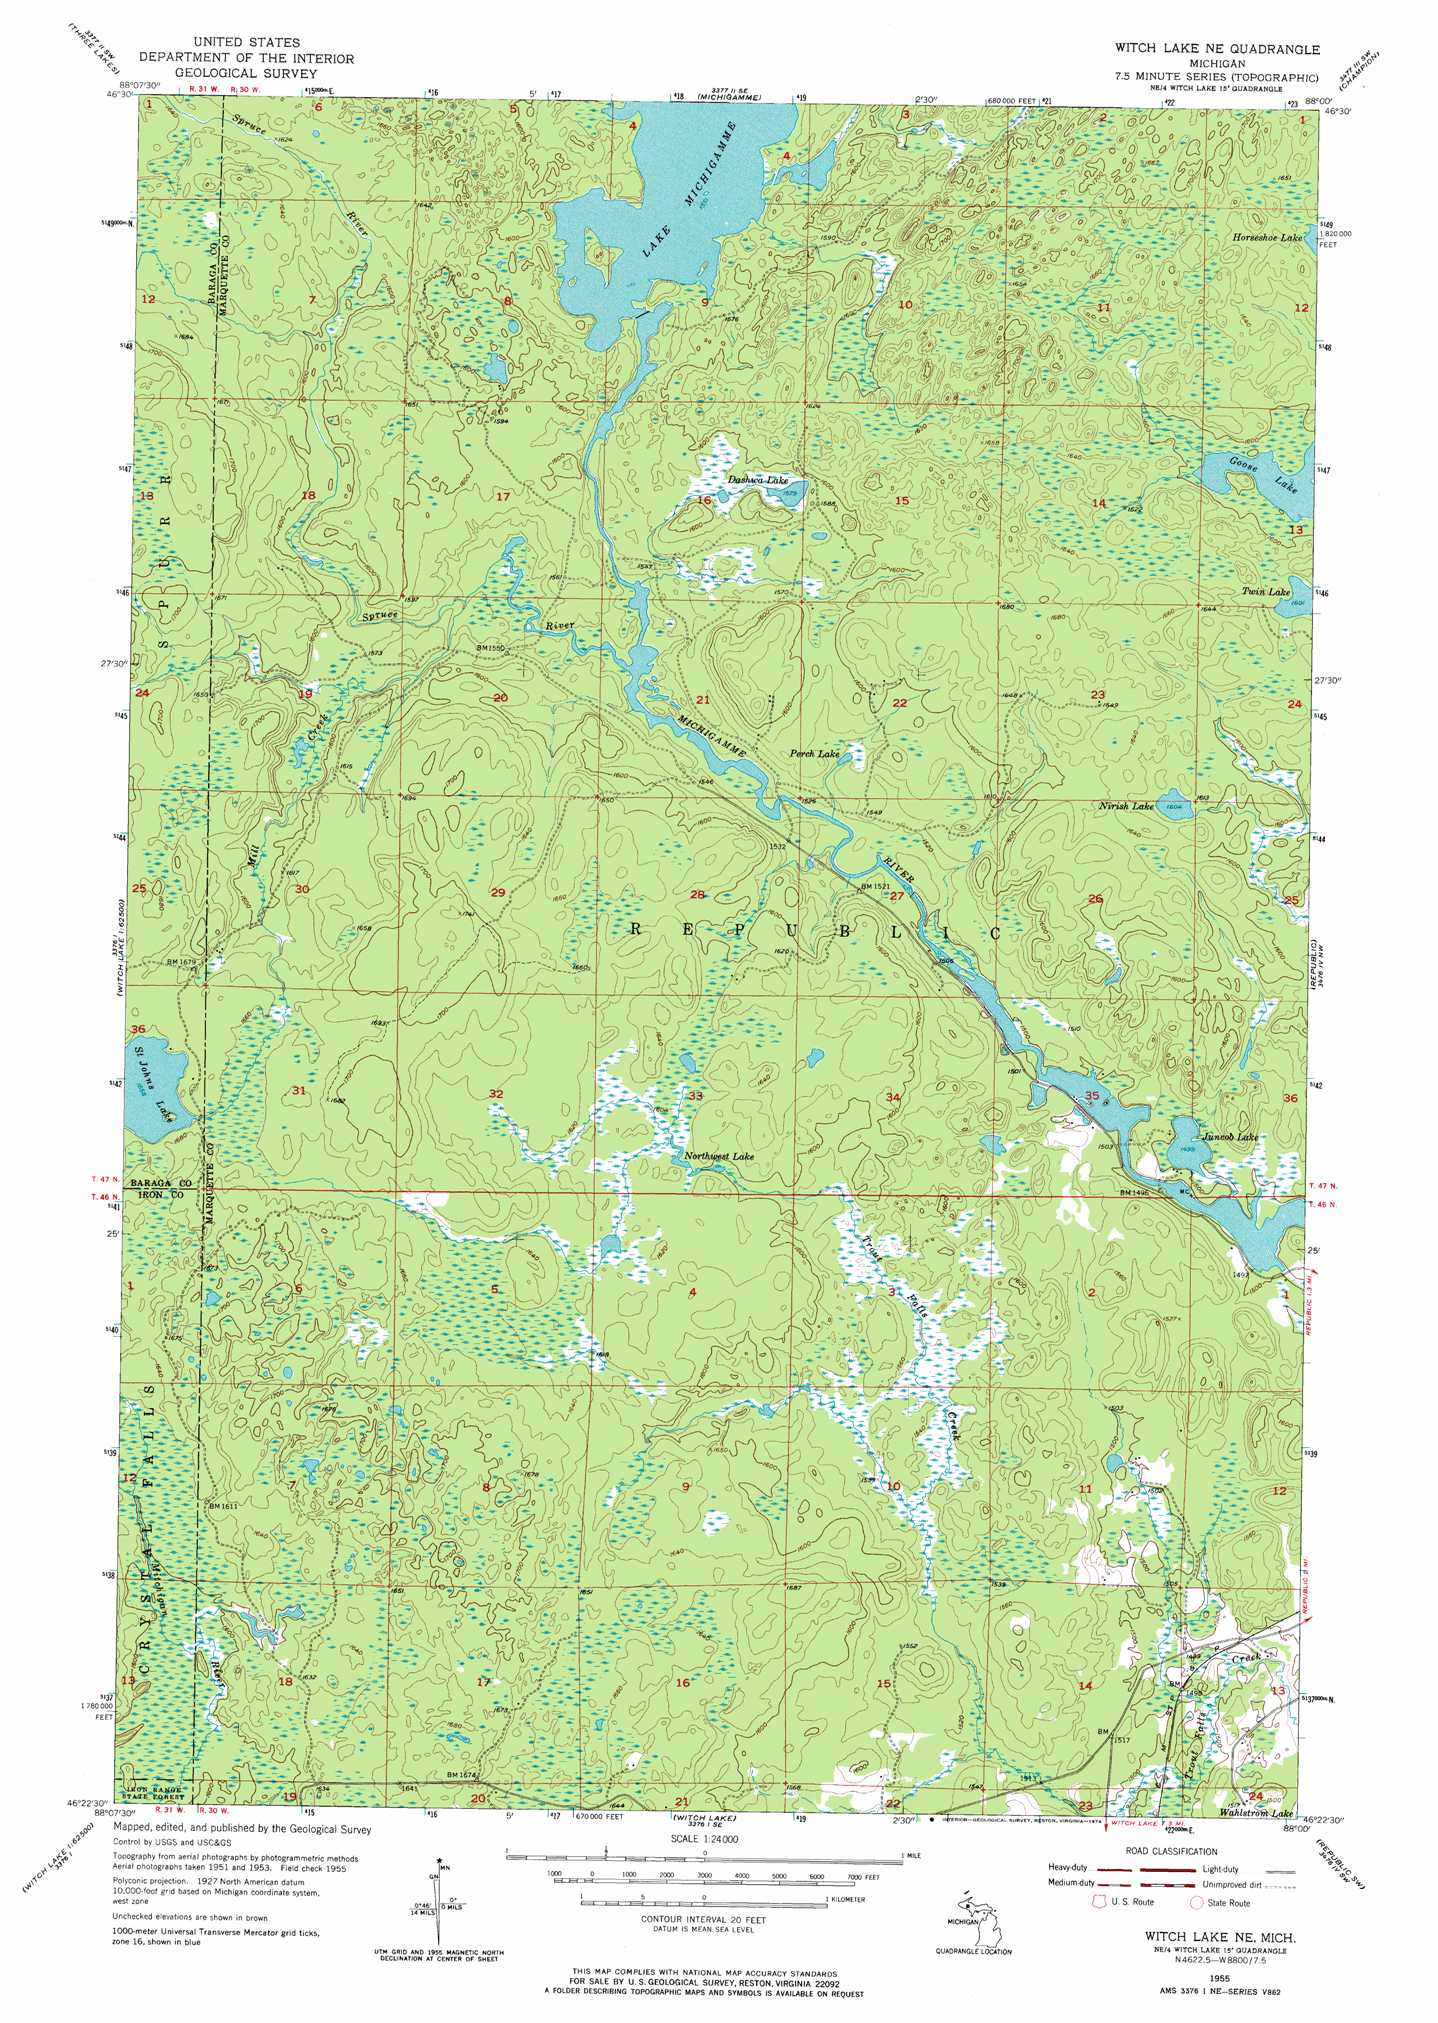 Witch Lake Ne Topographic Map MI  USGS Topo Quad 46088d1